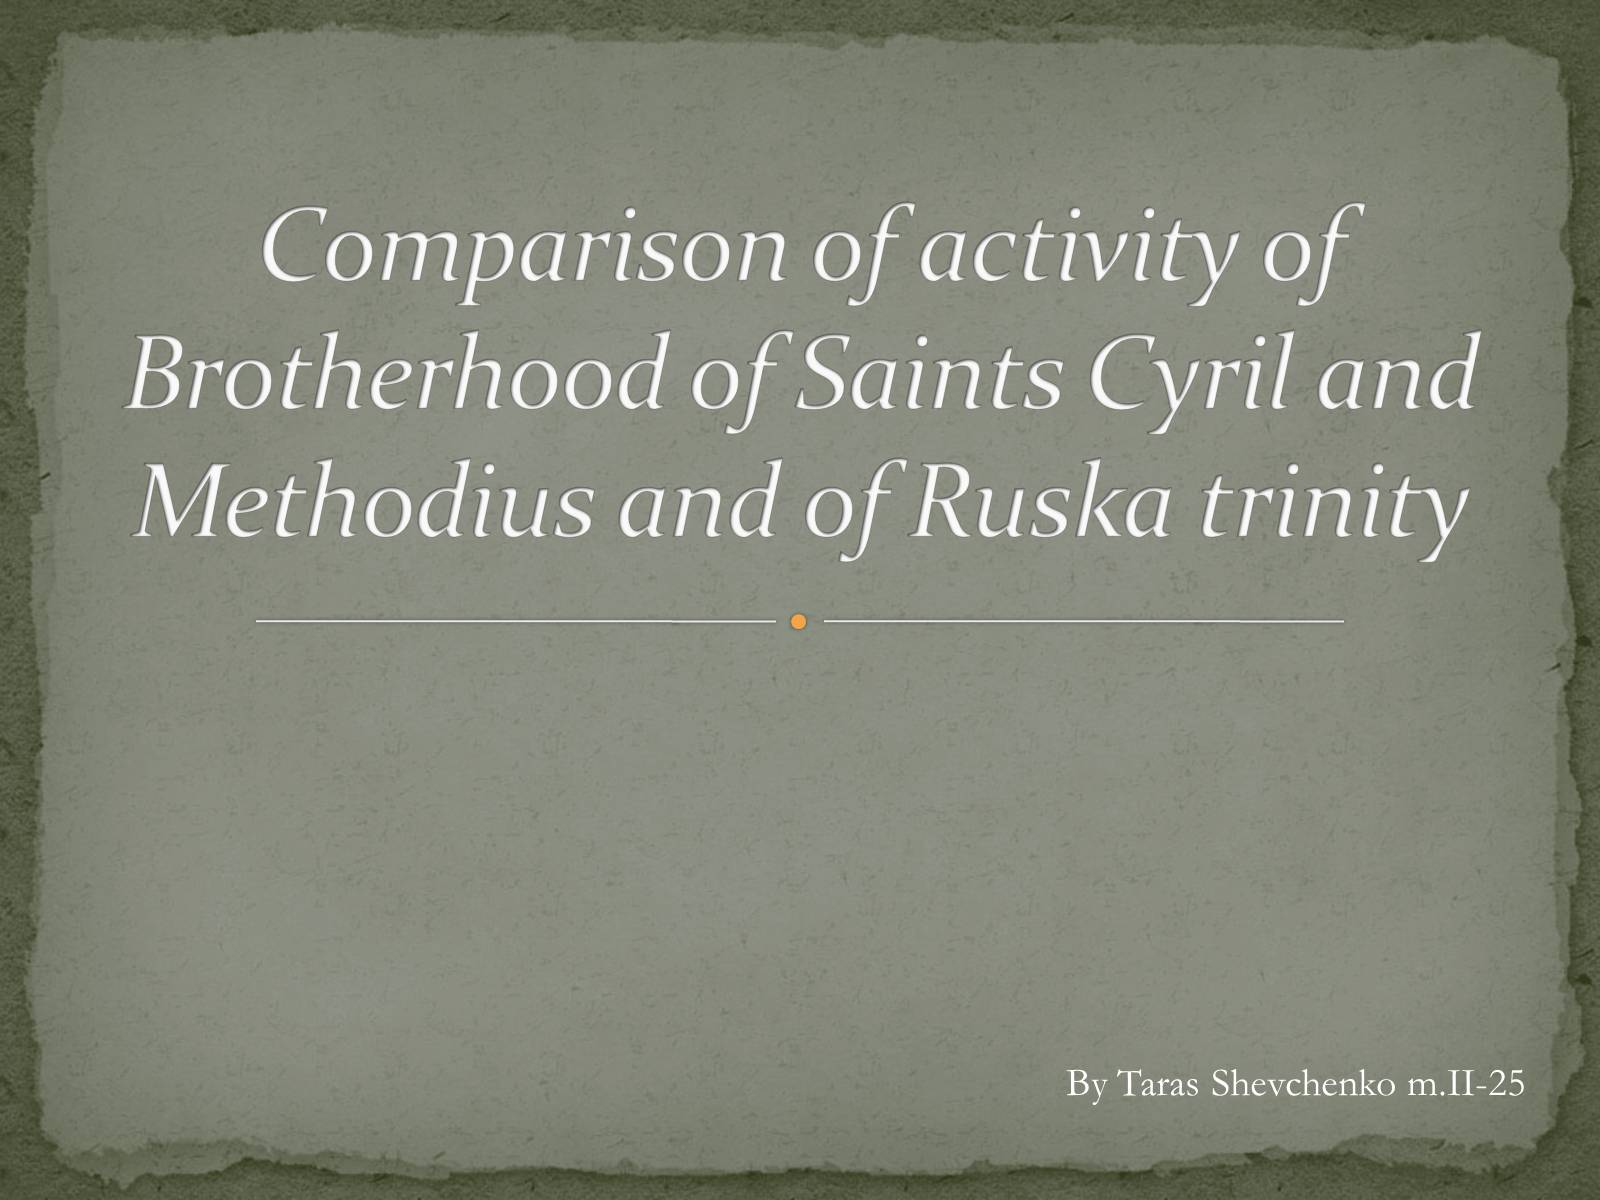 Презентація на тему «Comparison of activity of Brotherhood of Saints Cyril»